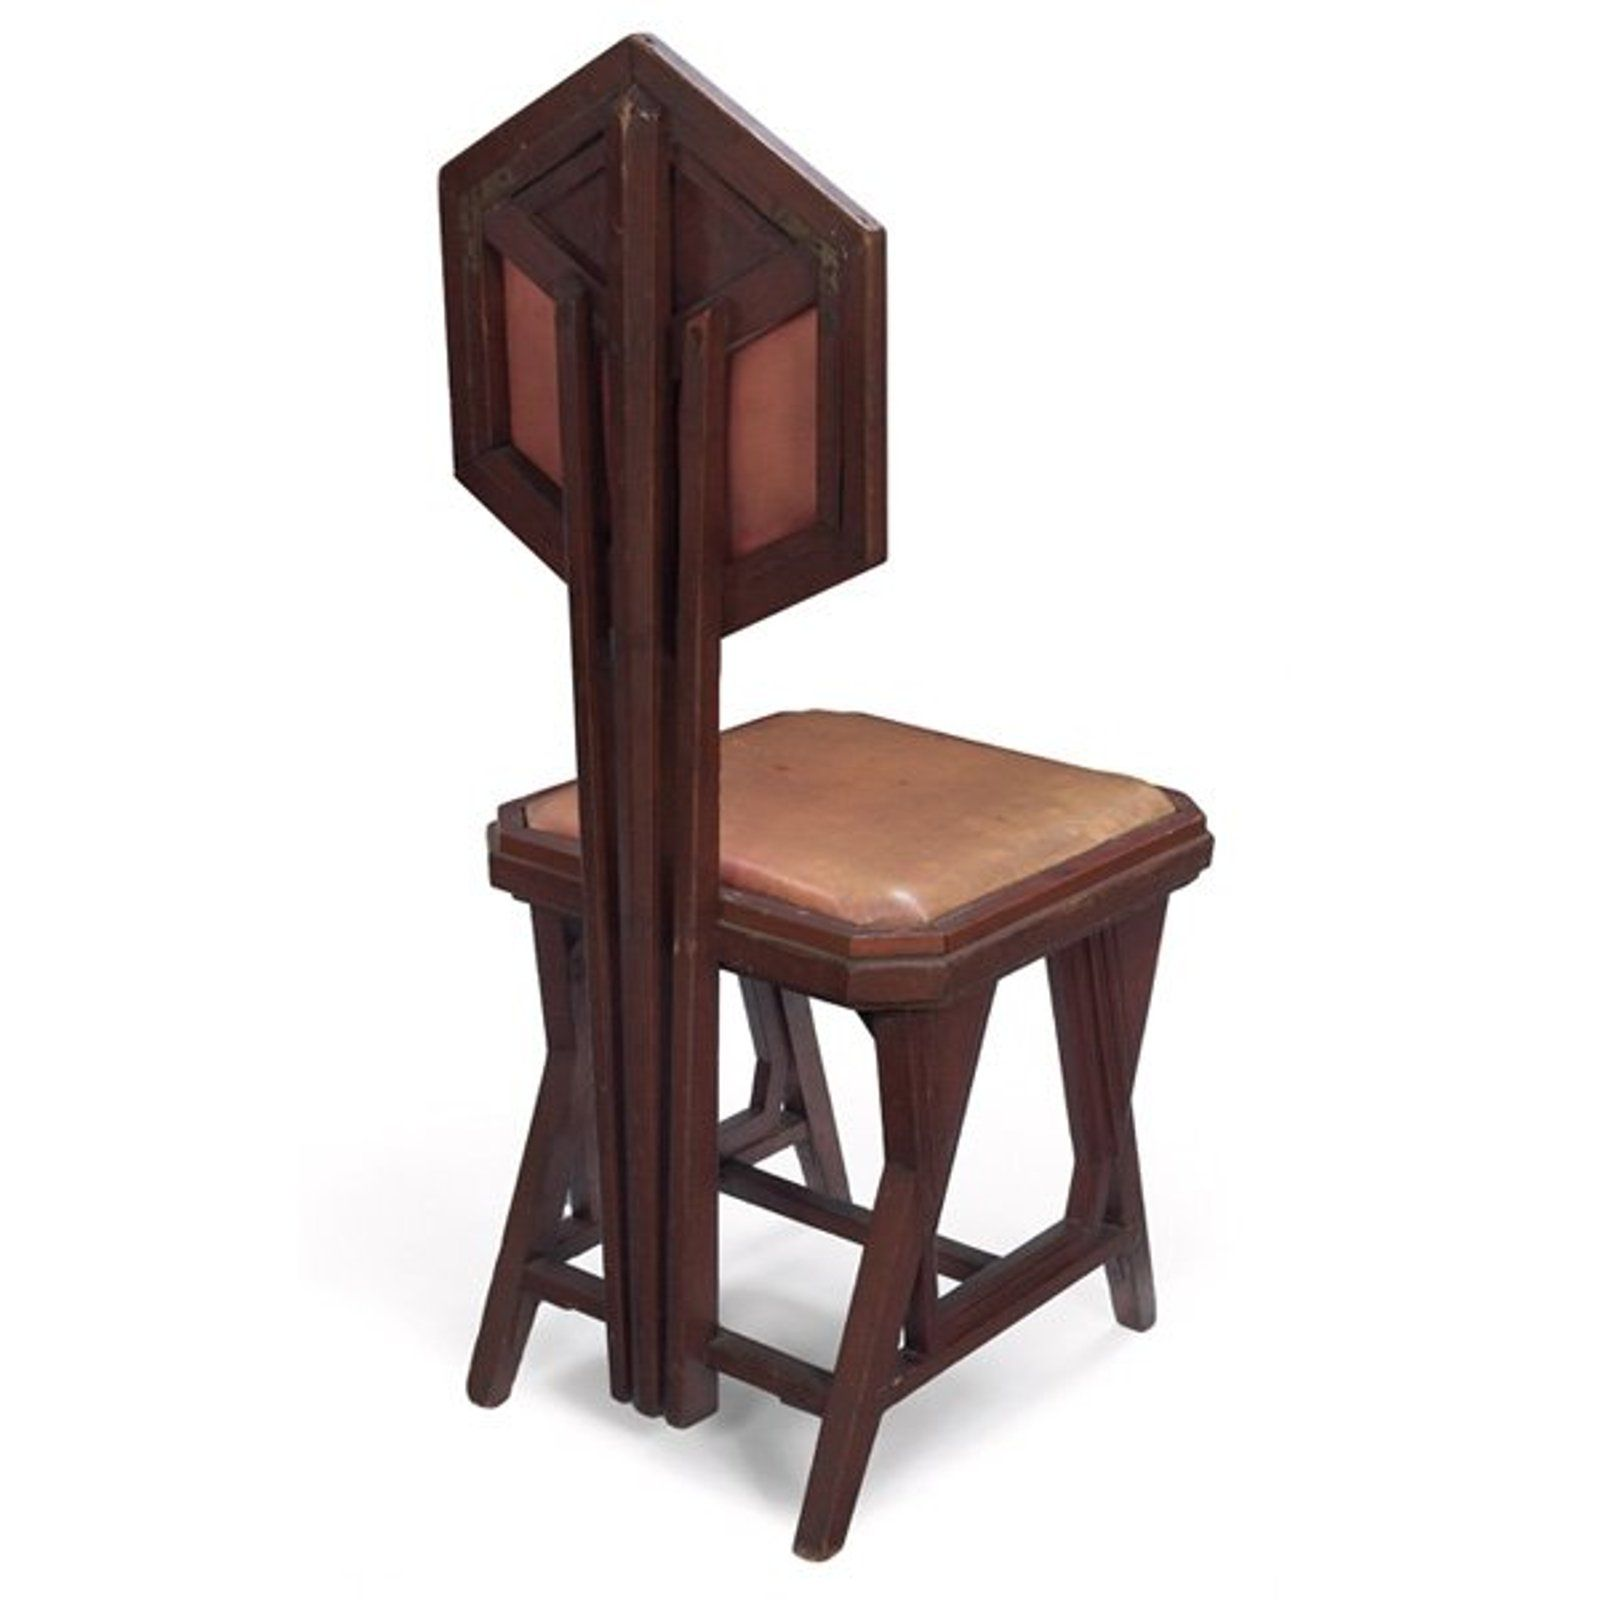 411: Frank Lloyd Wright Chair From The Imperial Hotel, ...